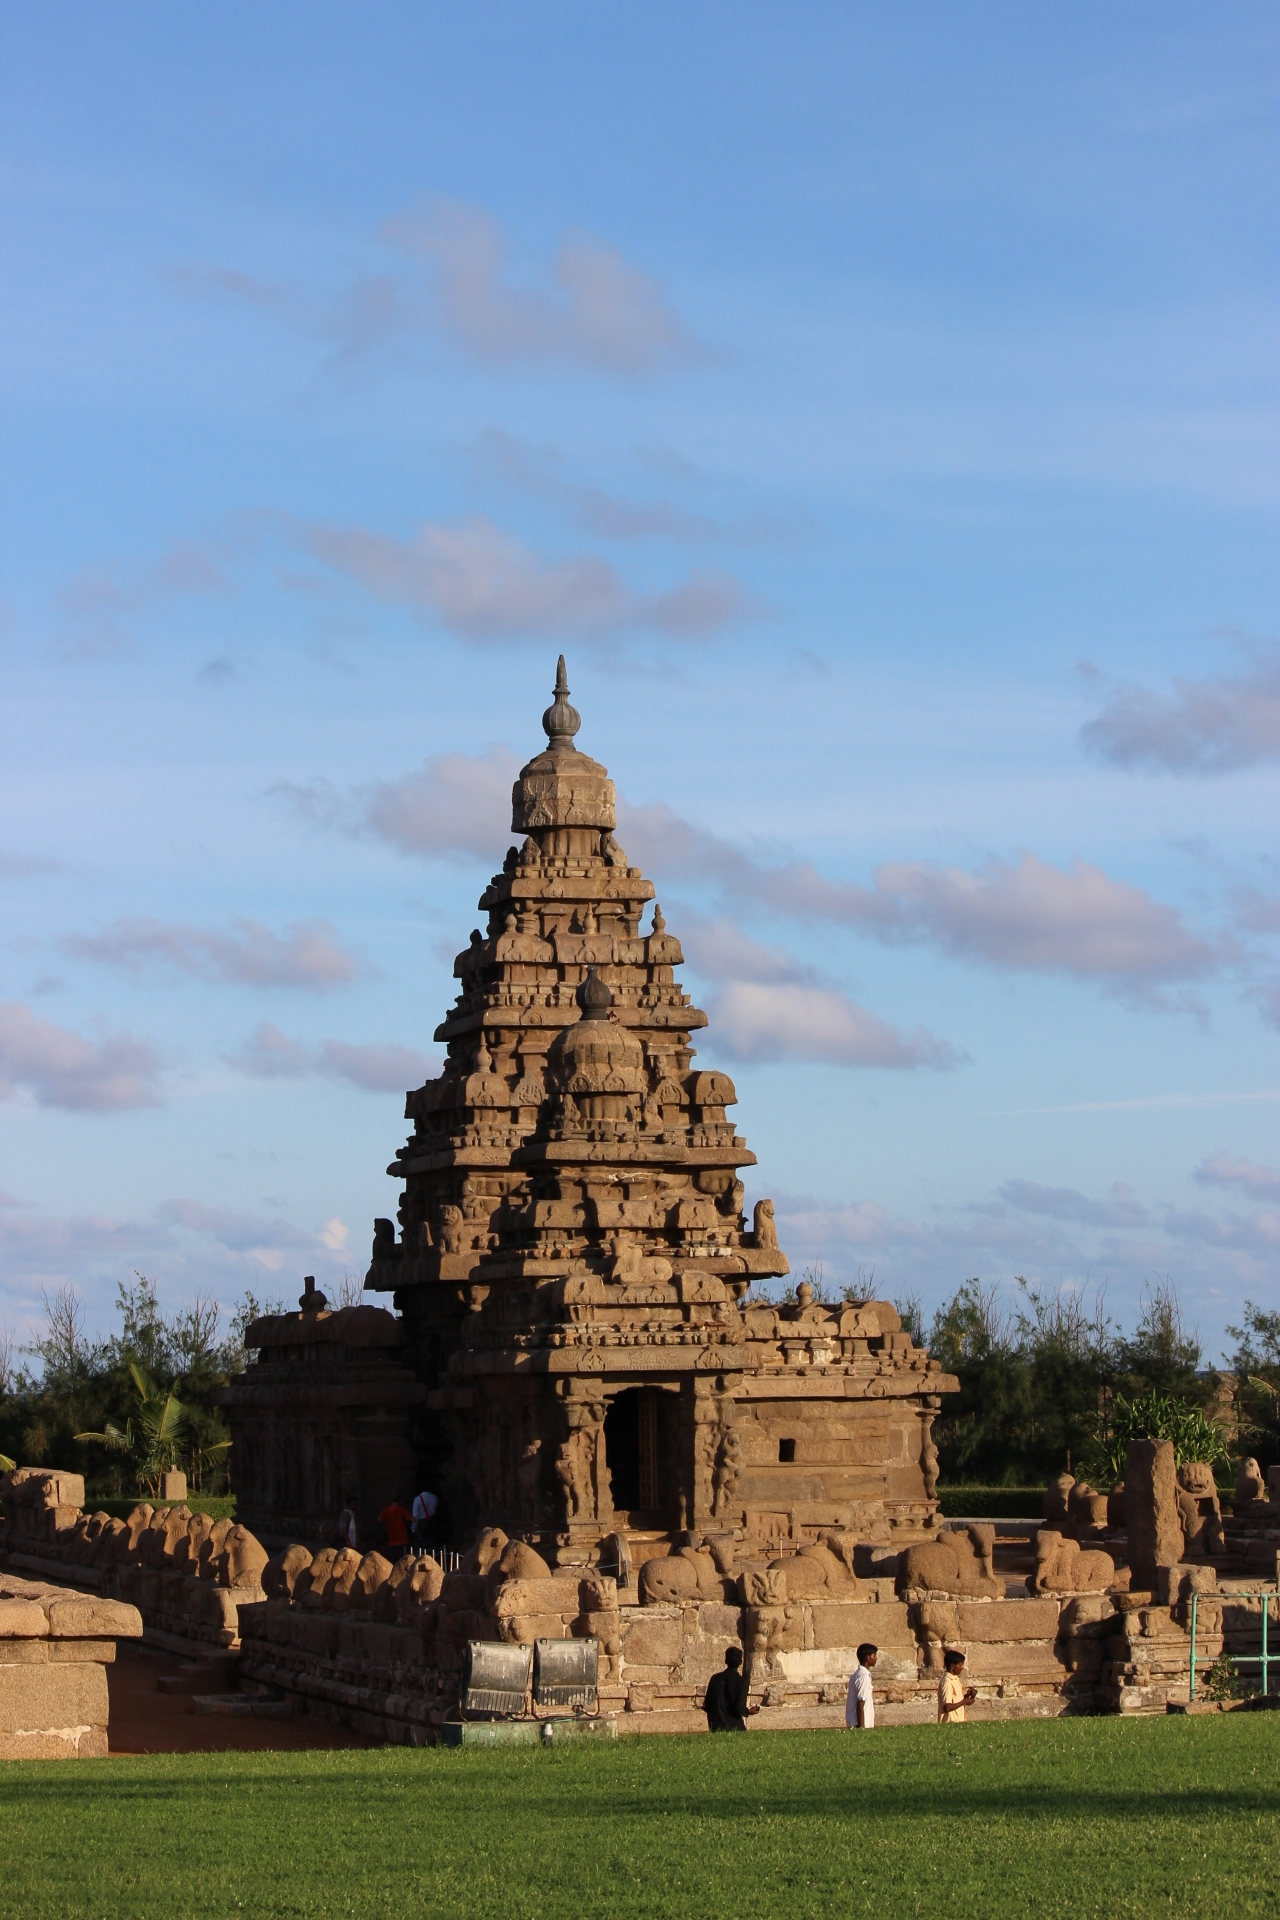 The shore temple at mahabalipuram with excellent architecture